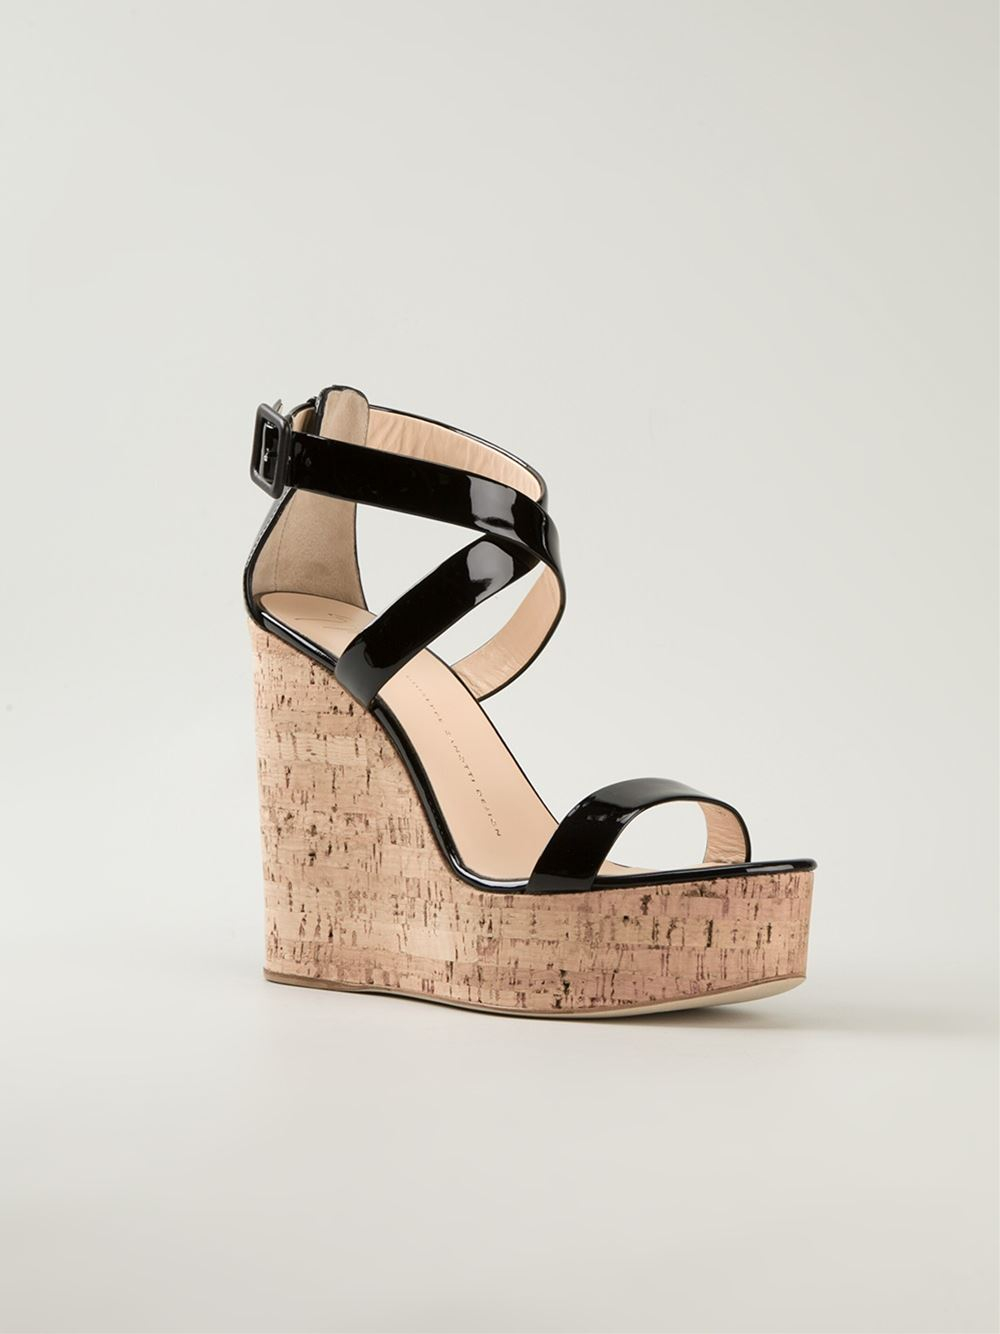 Black Wedges, Black Wedges Sandals, Boho Black Wedges, Gladiator Wedges, Black Strappy Sandals, Greek Sandals, Leather Sandals ecreation. 5 out of 5 stars (42) $ $ $ (15% off There are strappy black wedge for sale on Etsy, and they cost $ on average. The most popular color?